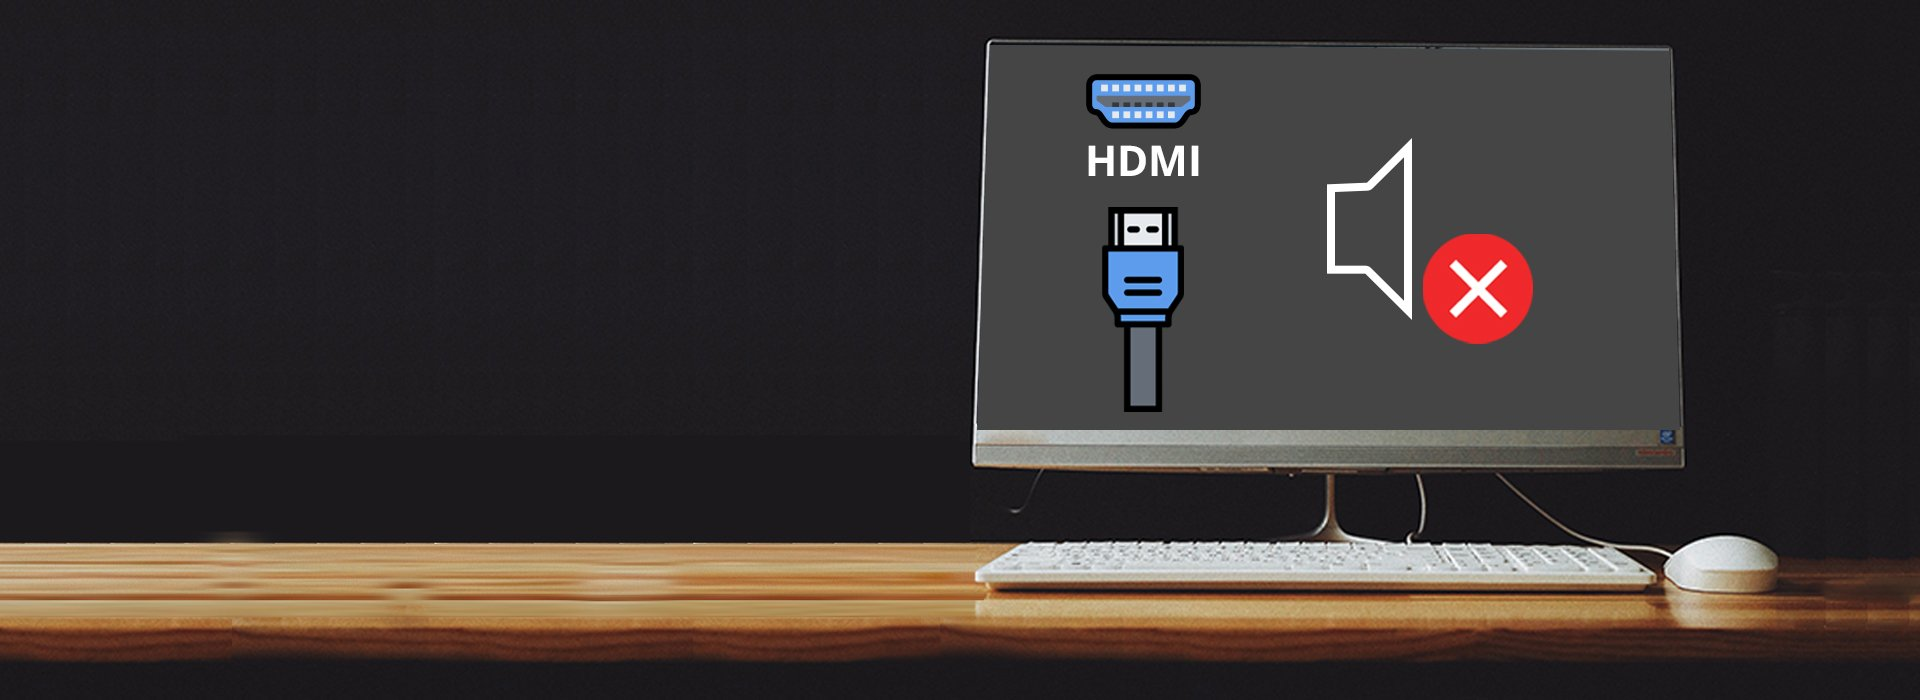 How to Fix HDMI No Sound after Connecting Computer to